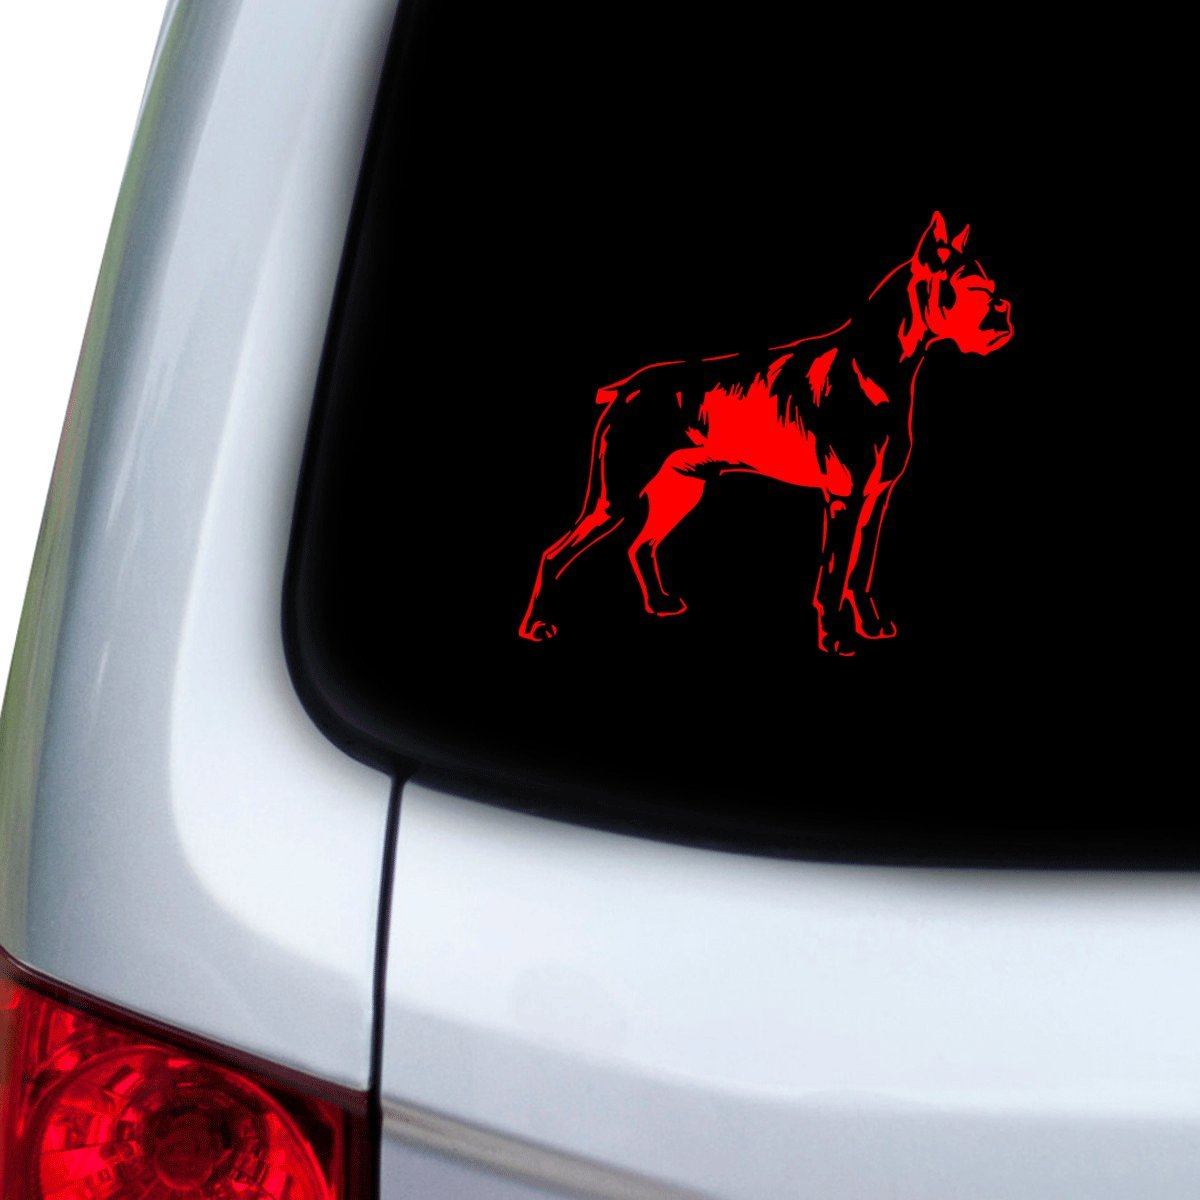 Red Doors StickAny Car and Auto Decal Series Boxer Sticker for Windows Hoods